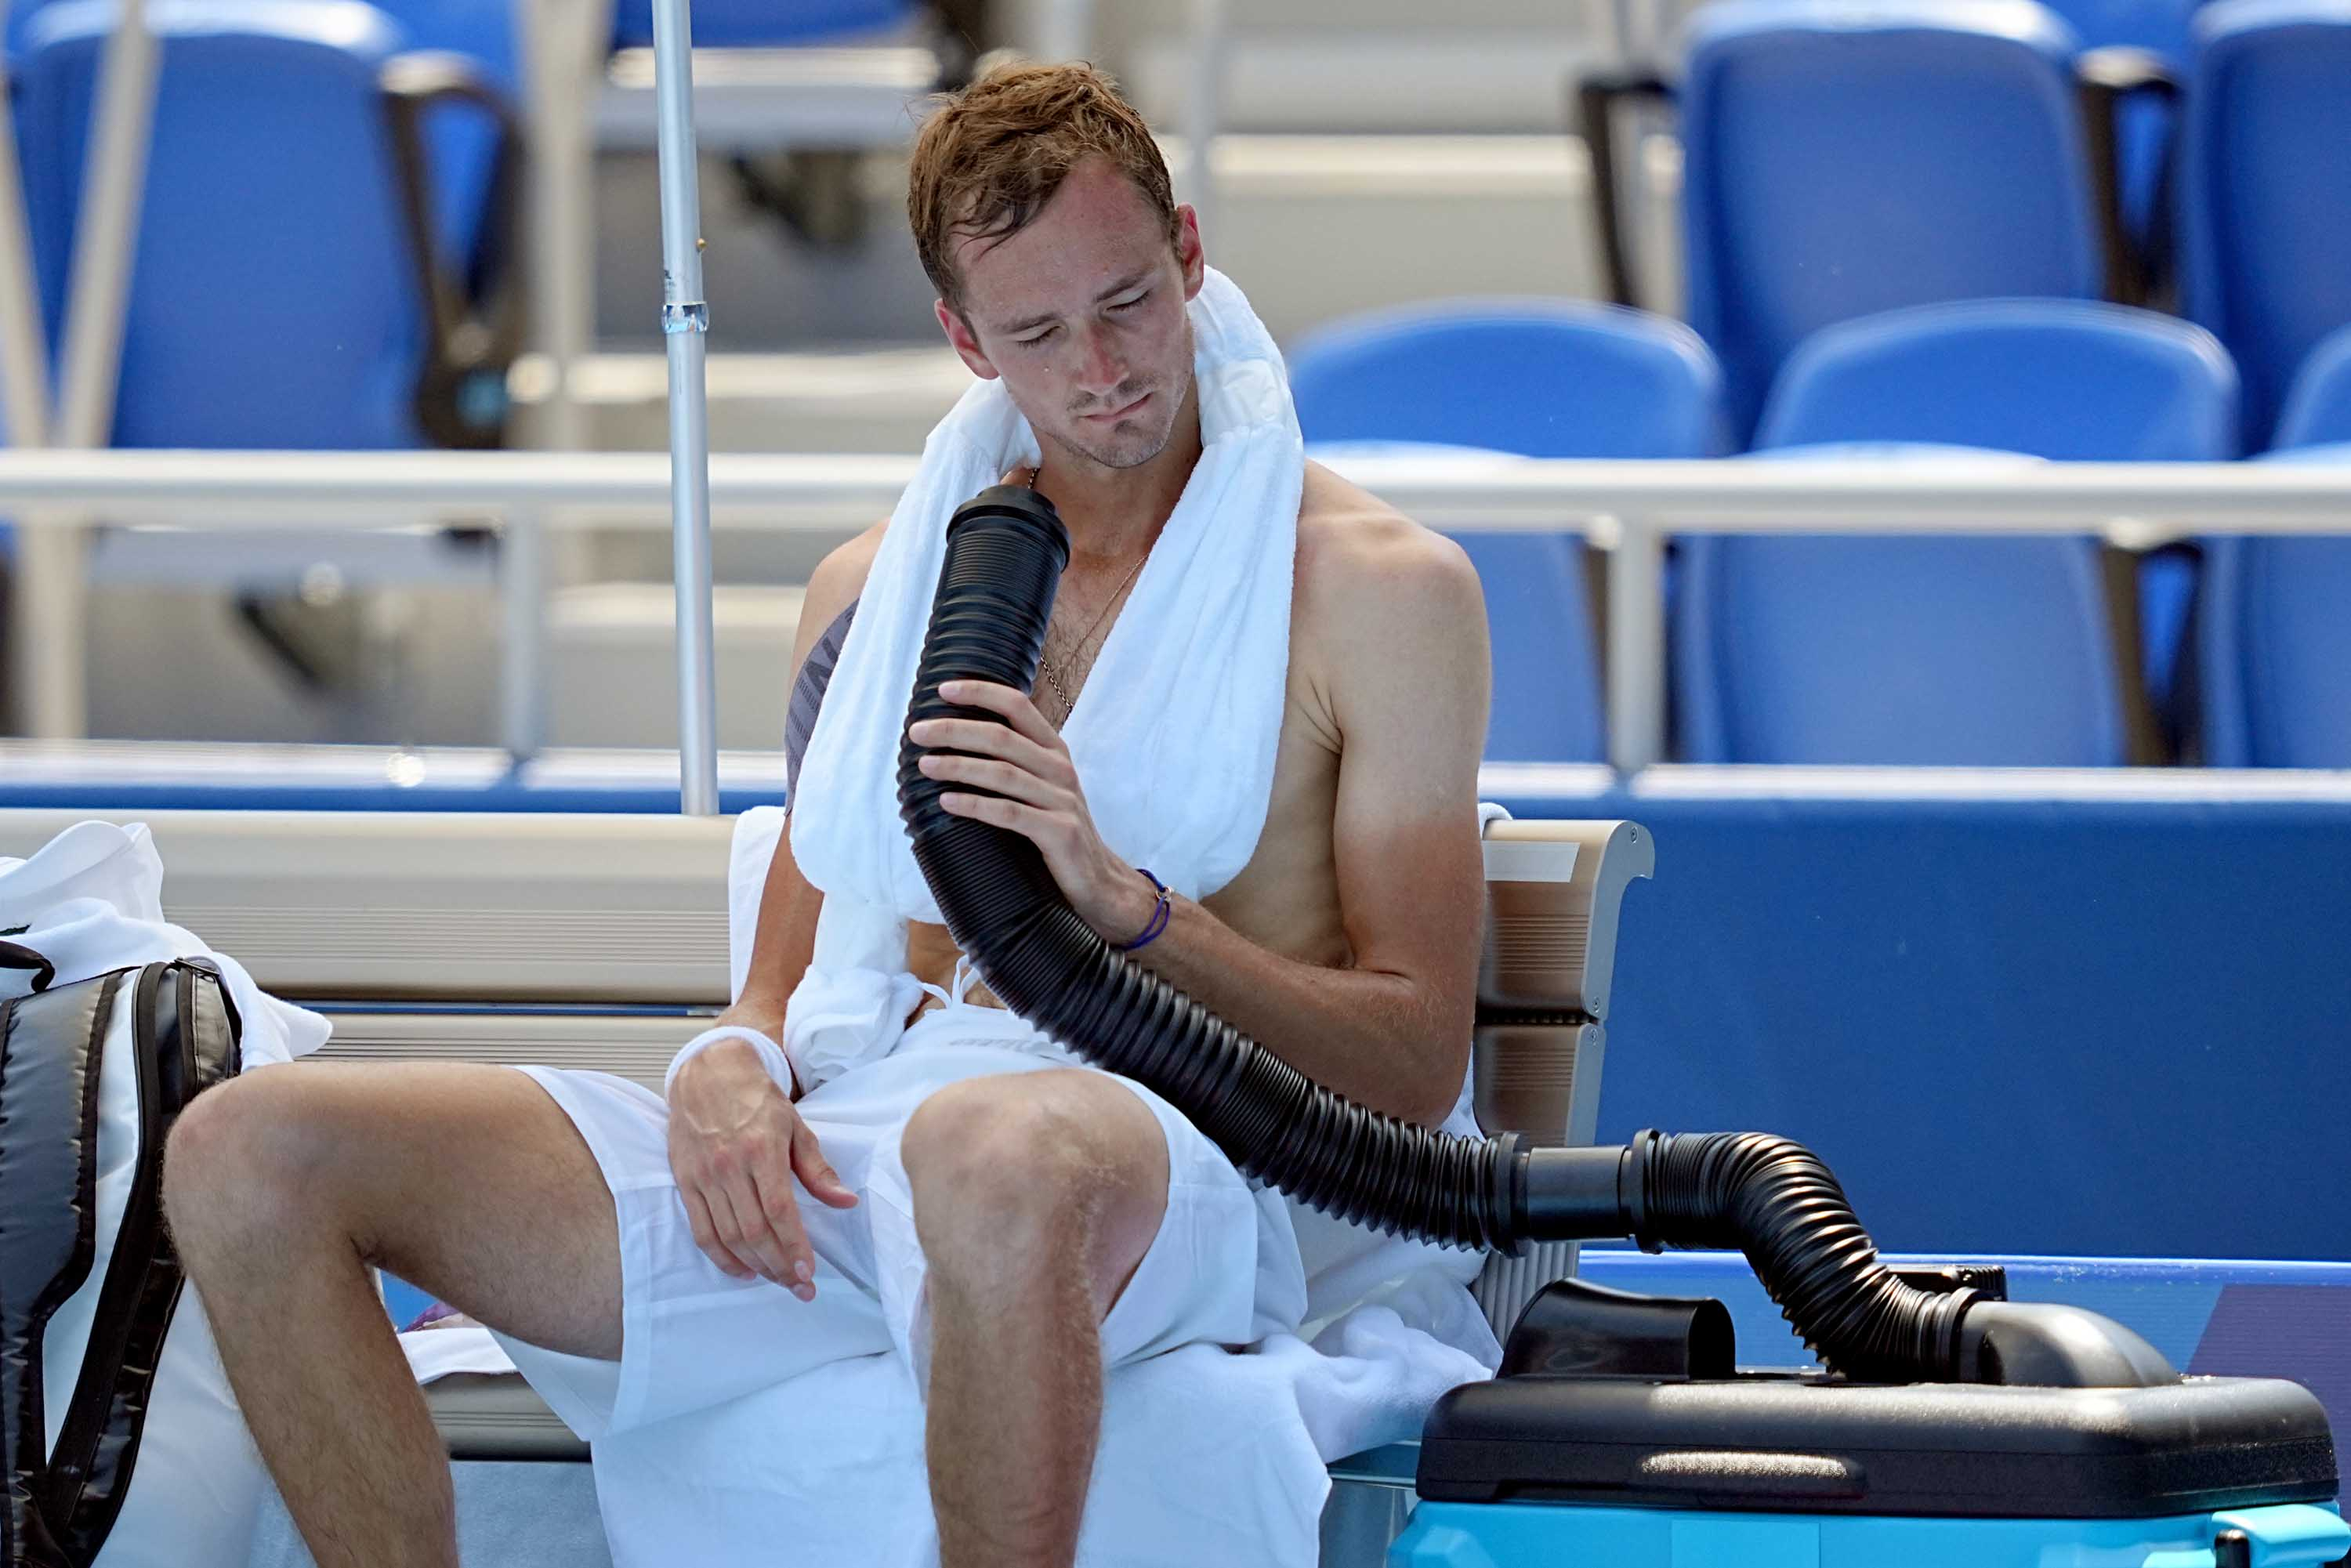 Daniil Medvedev cools down using a mobile air conditioner and a towel with ice cubes, during a break in the men's singles event in Tokyo, on July 24.